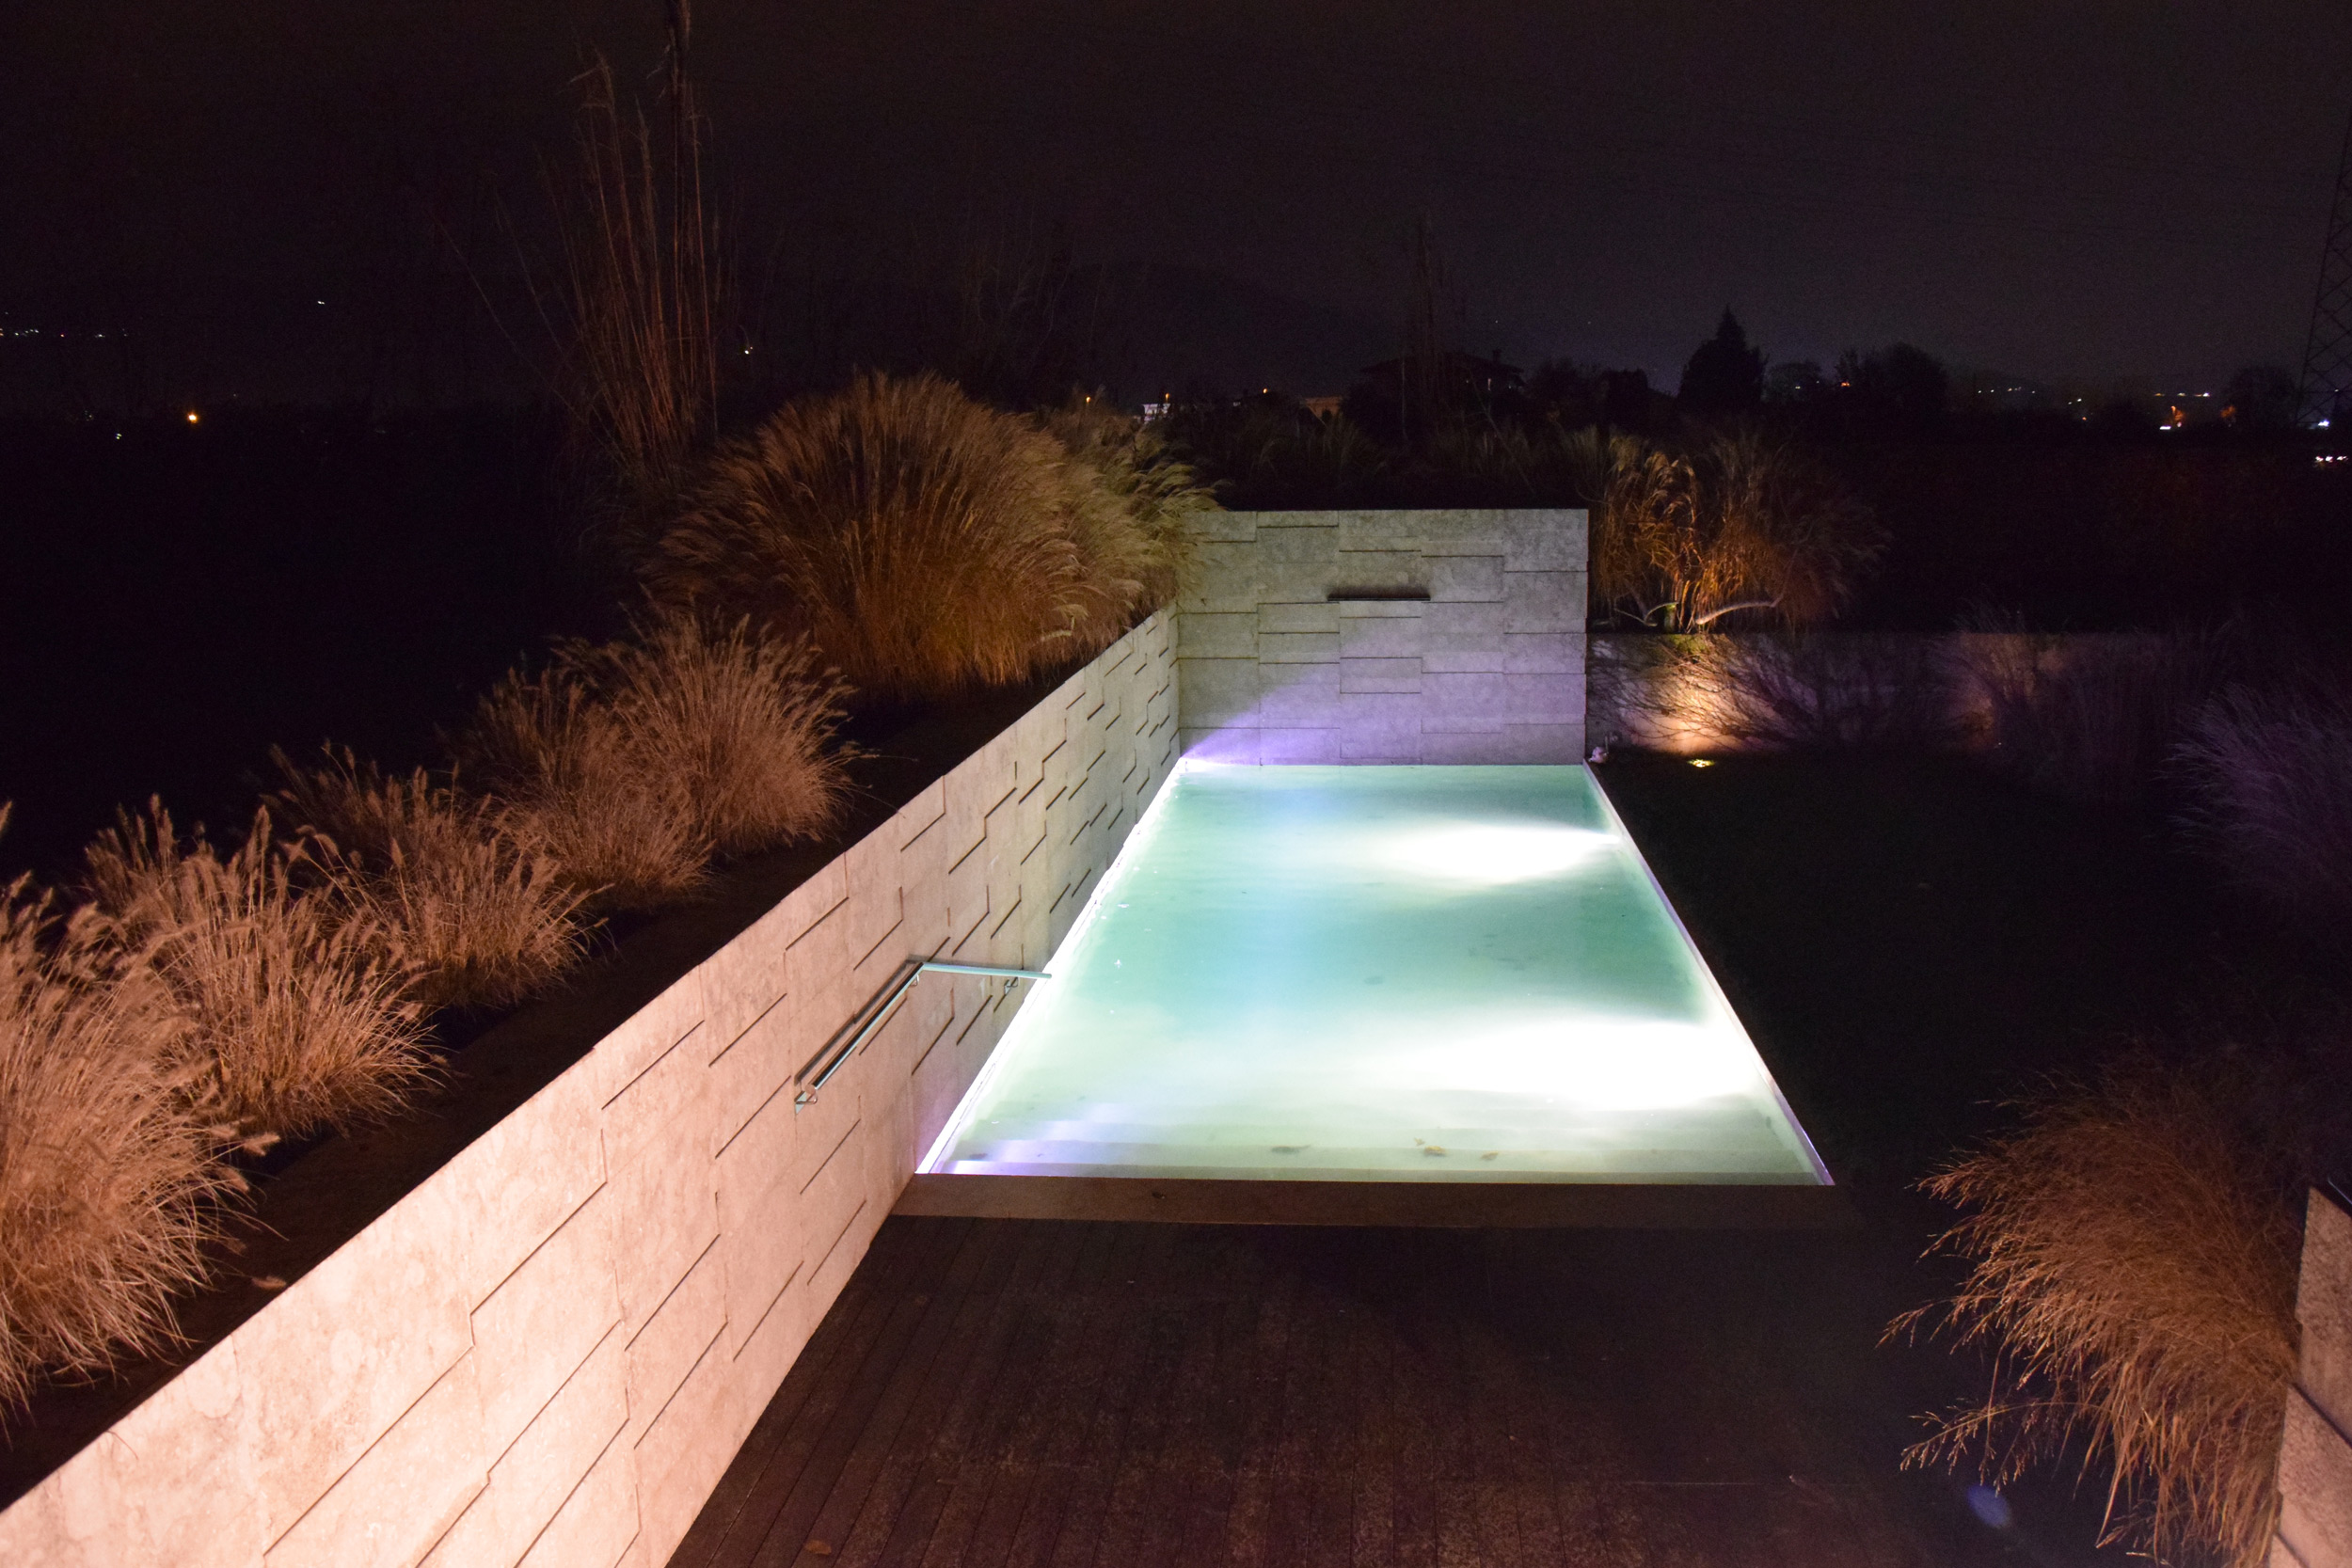 Pennisetum alopecuroides, lights, swimming pool